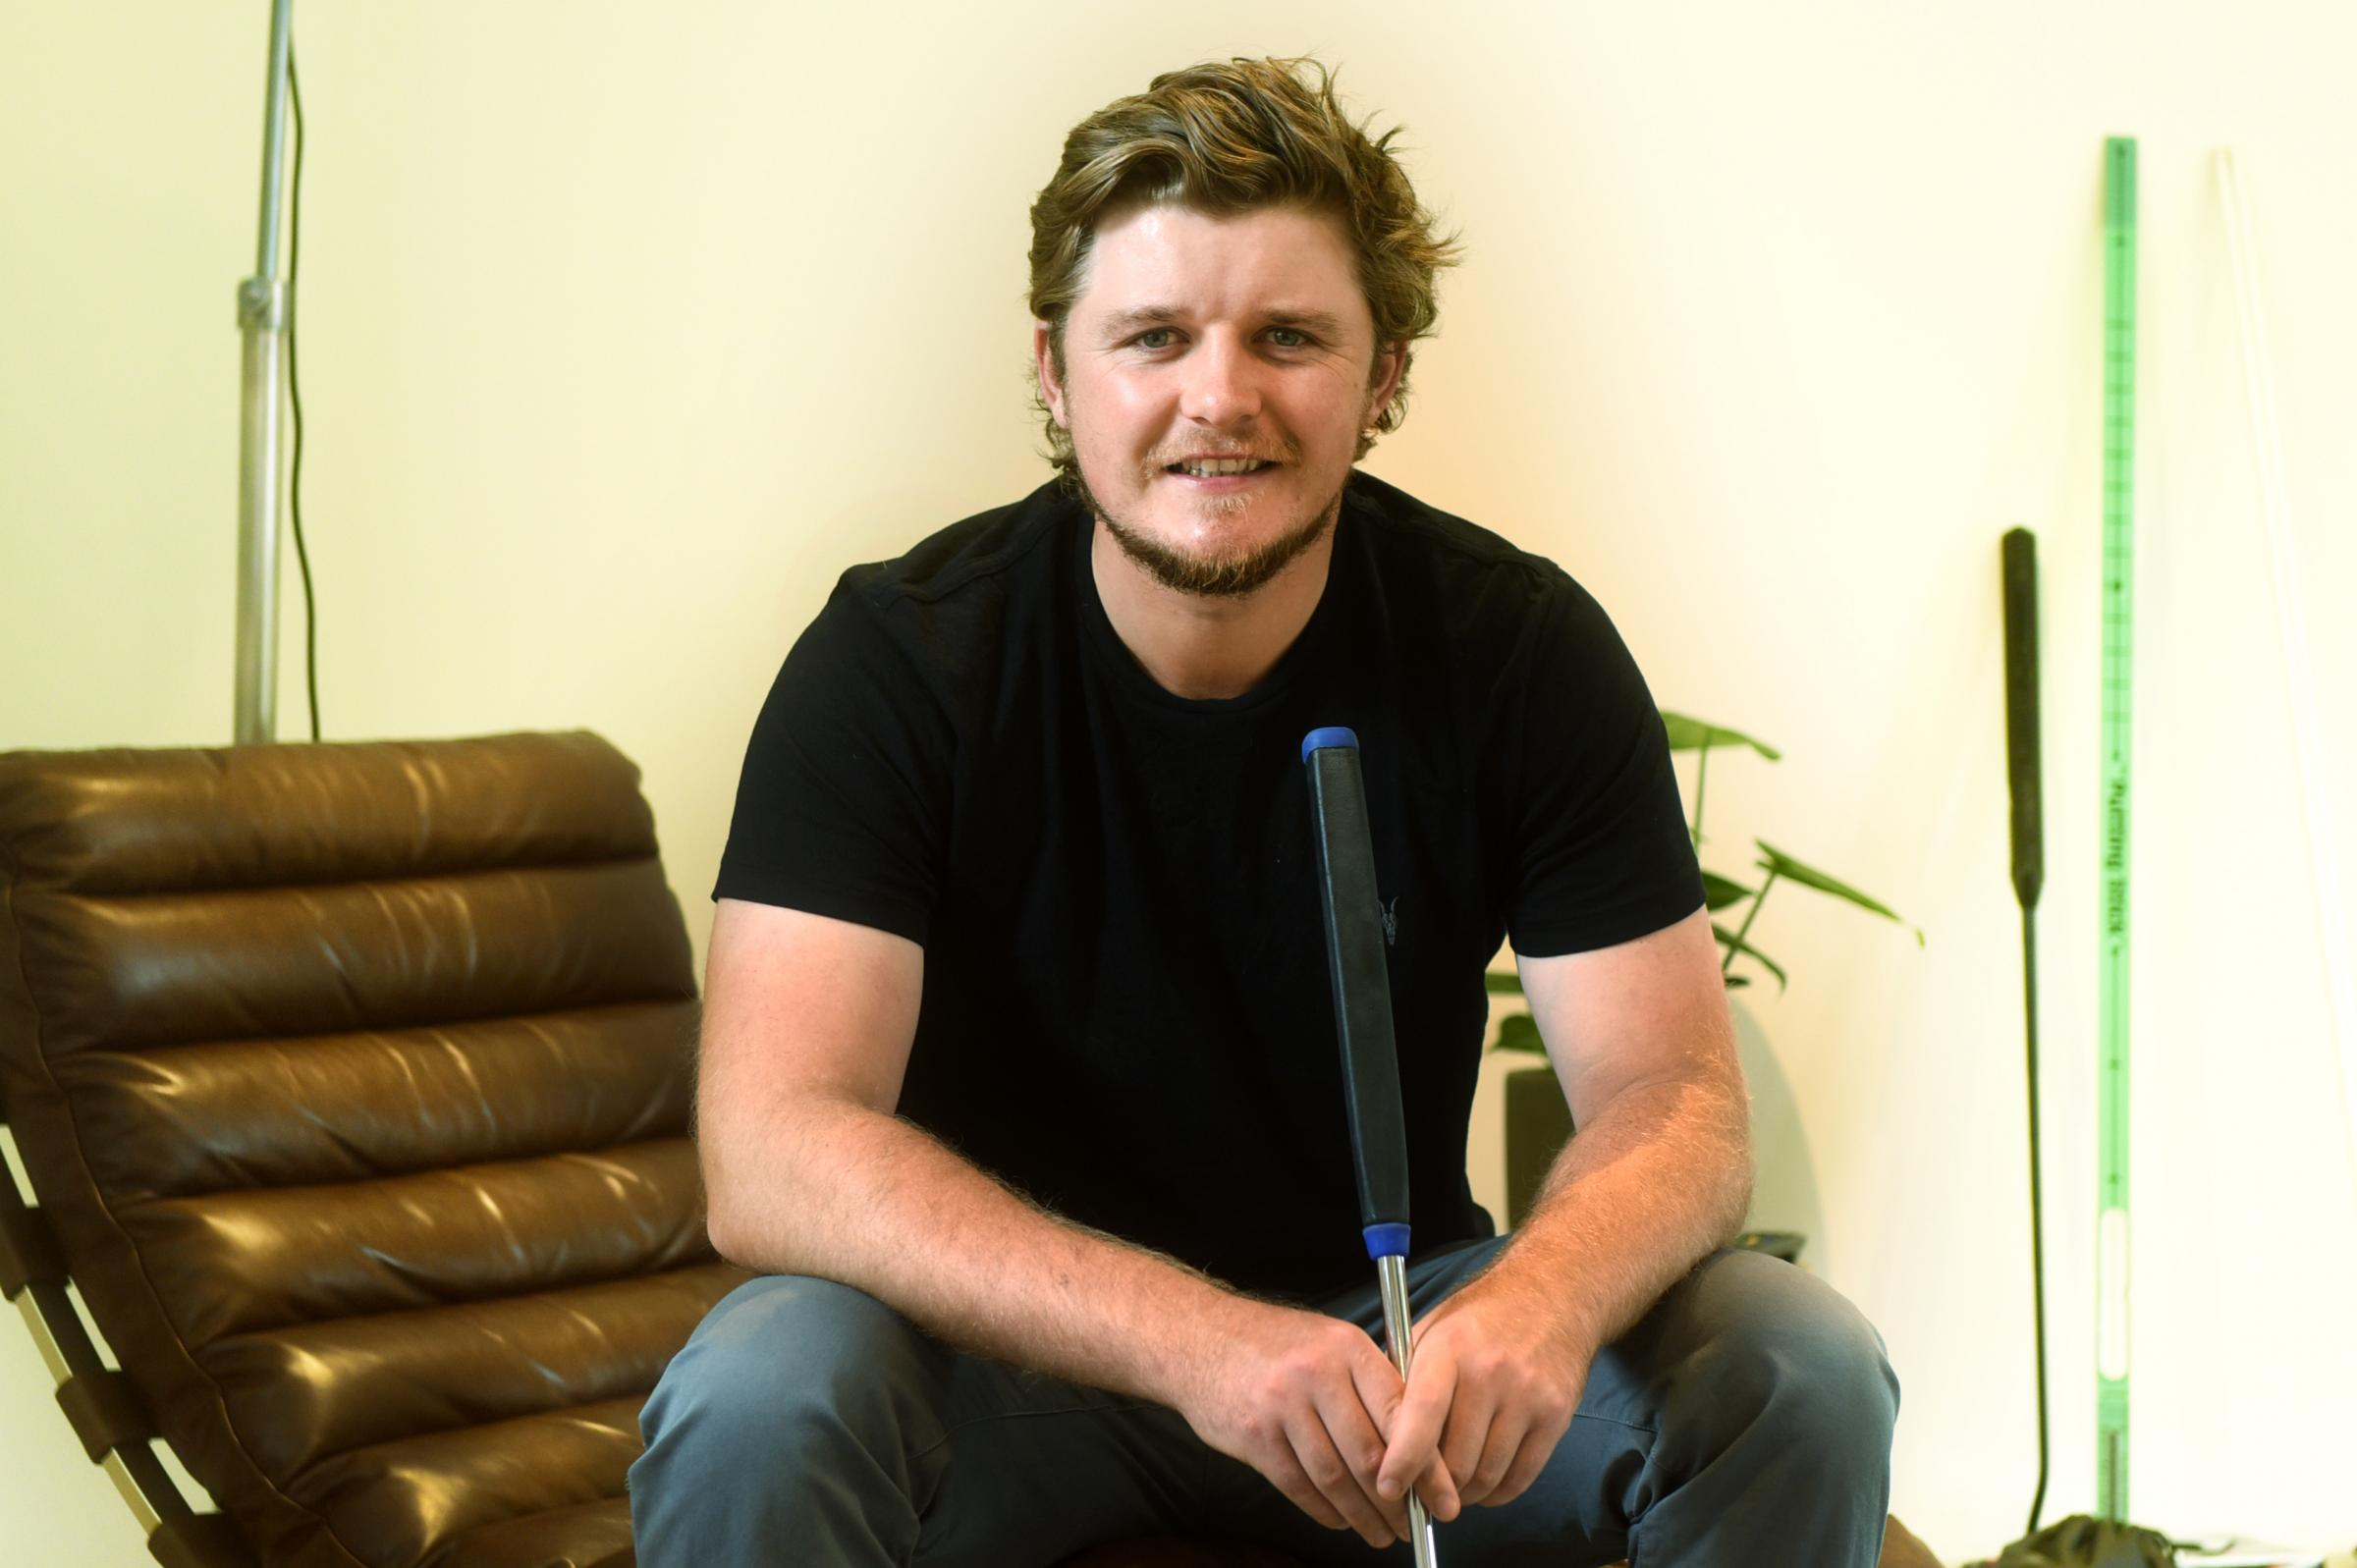 SITTING IT OUT: Eddie Pepperell withdrew from French Open to rest wrist injury Picture Richard Cave